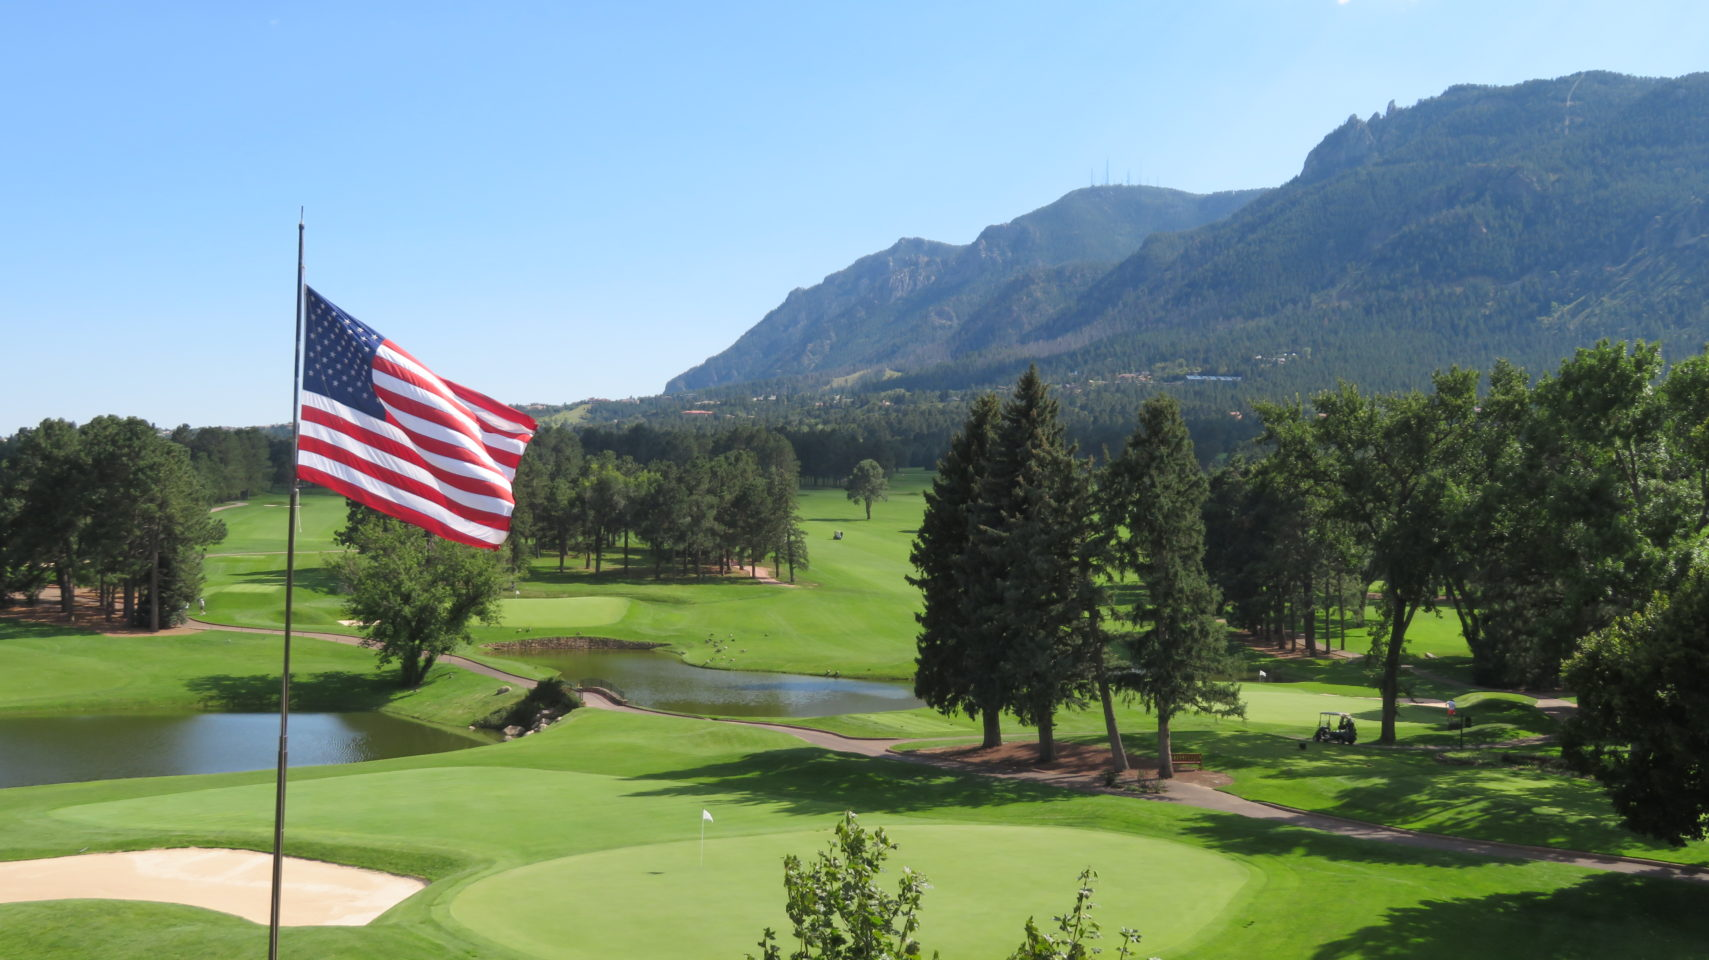 One of three award winning golf courses at The Broadmoor